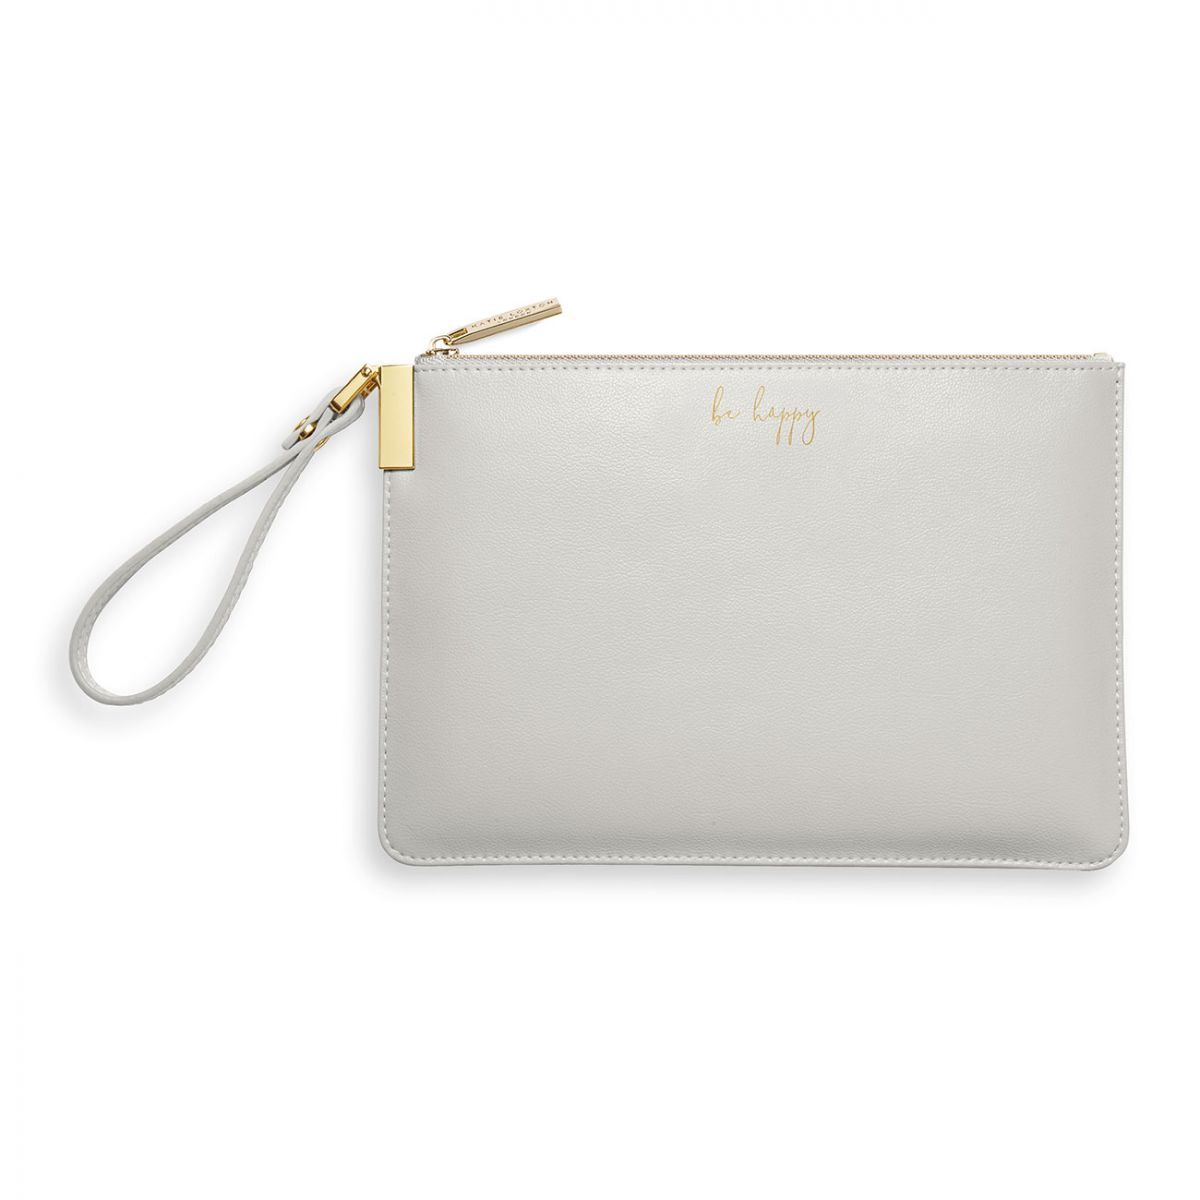 Katie Loxton Secret Message Pouch be happy be bright be you